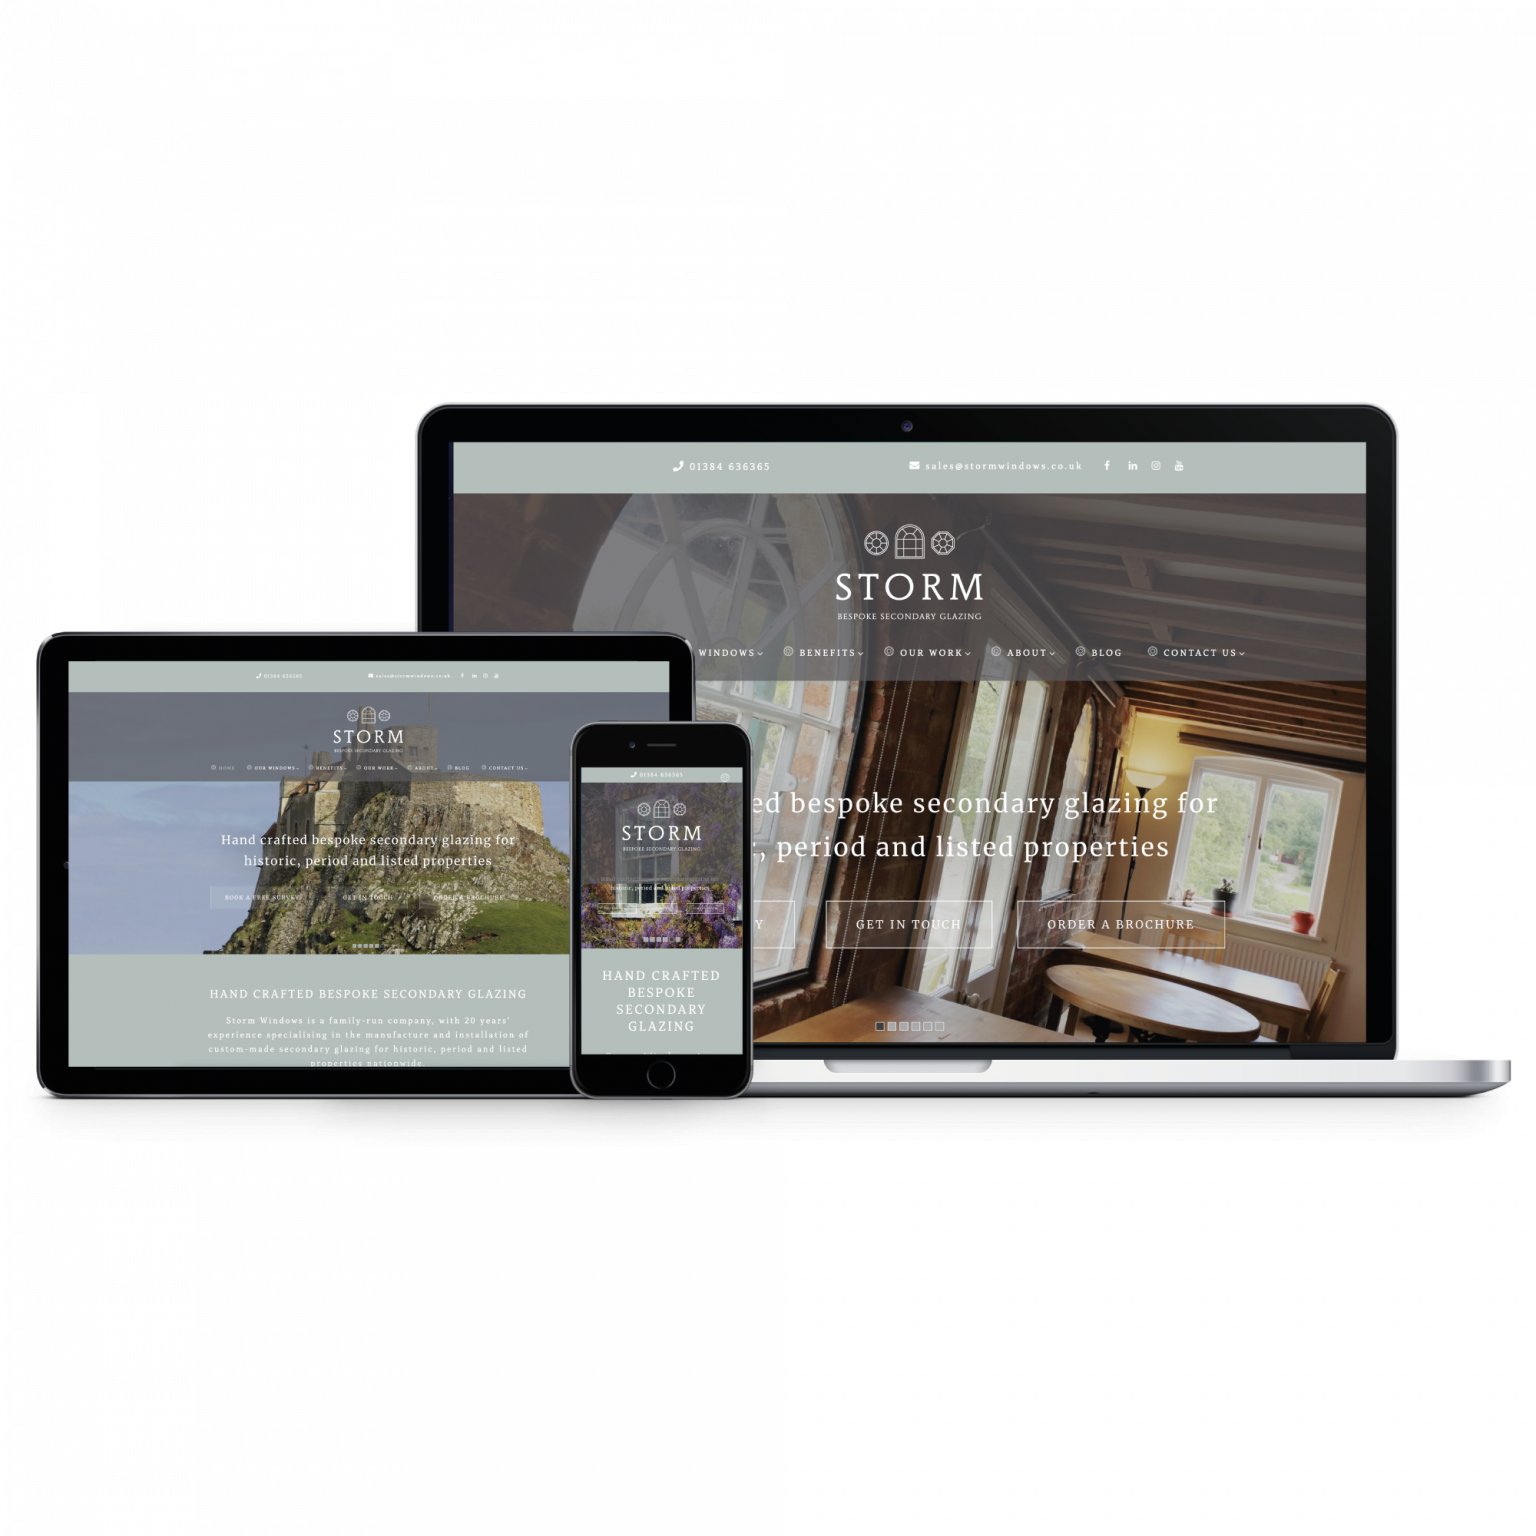 Storm Bespoke Secondary Glazing - take a look at our brand new website